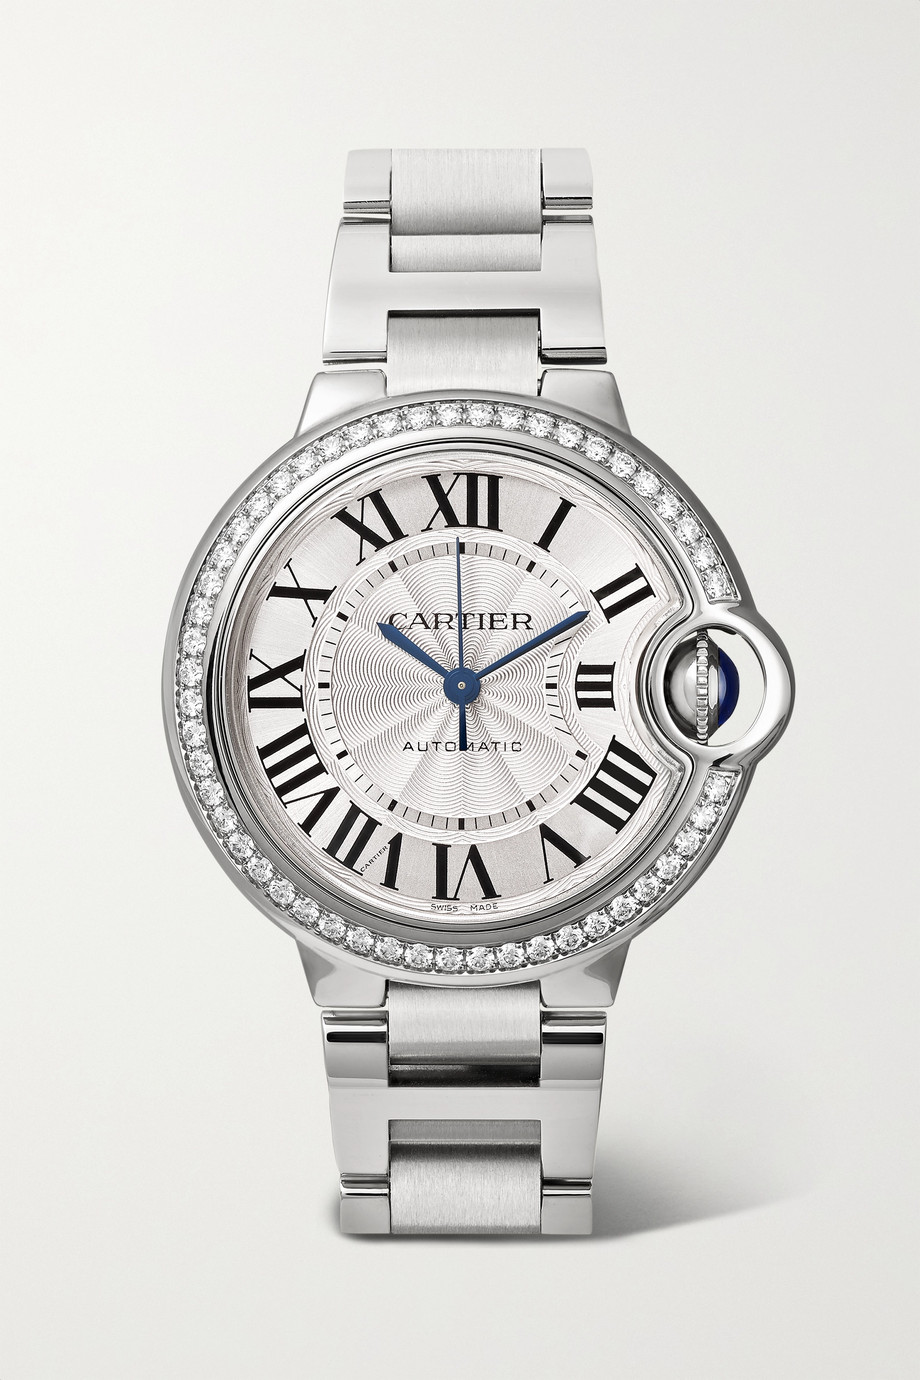 CARTIER Ballon Bleu de Cartier Automatic 36mm stainless steel and diamond watch